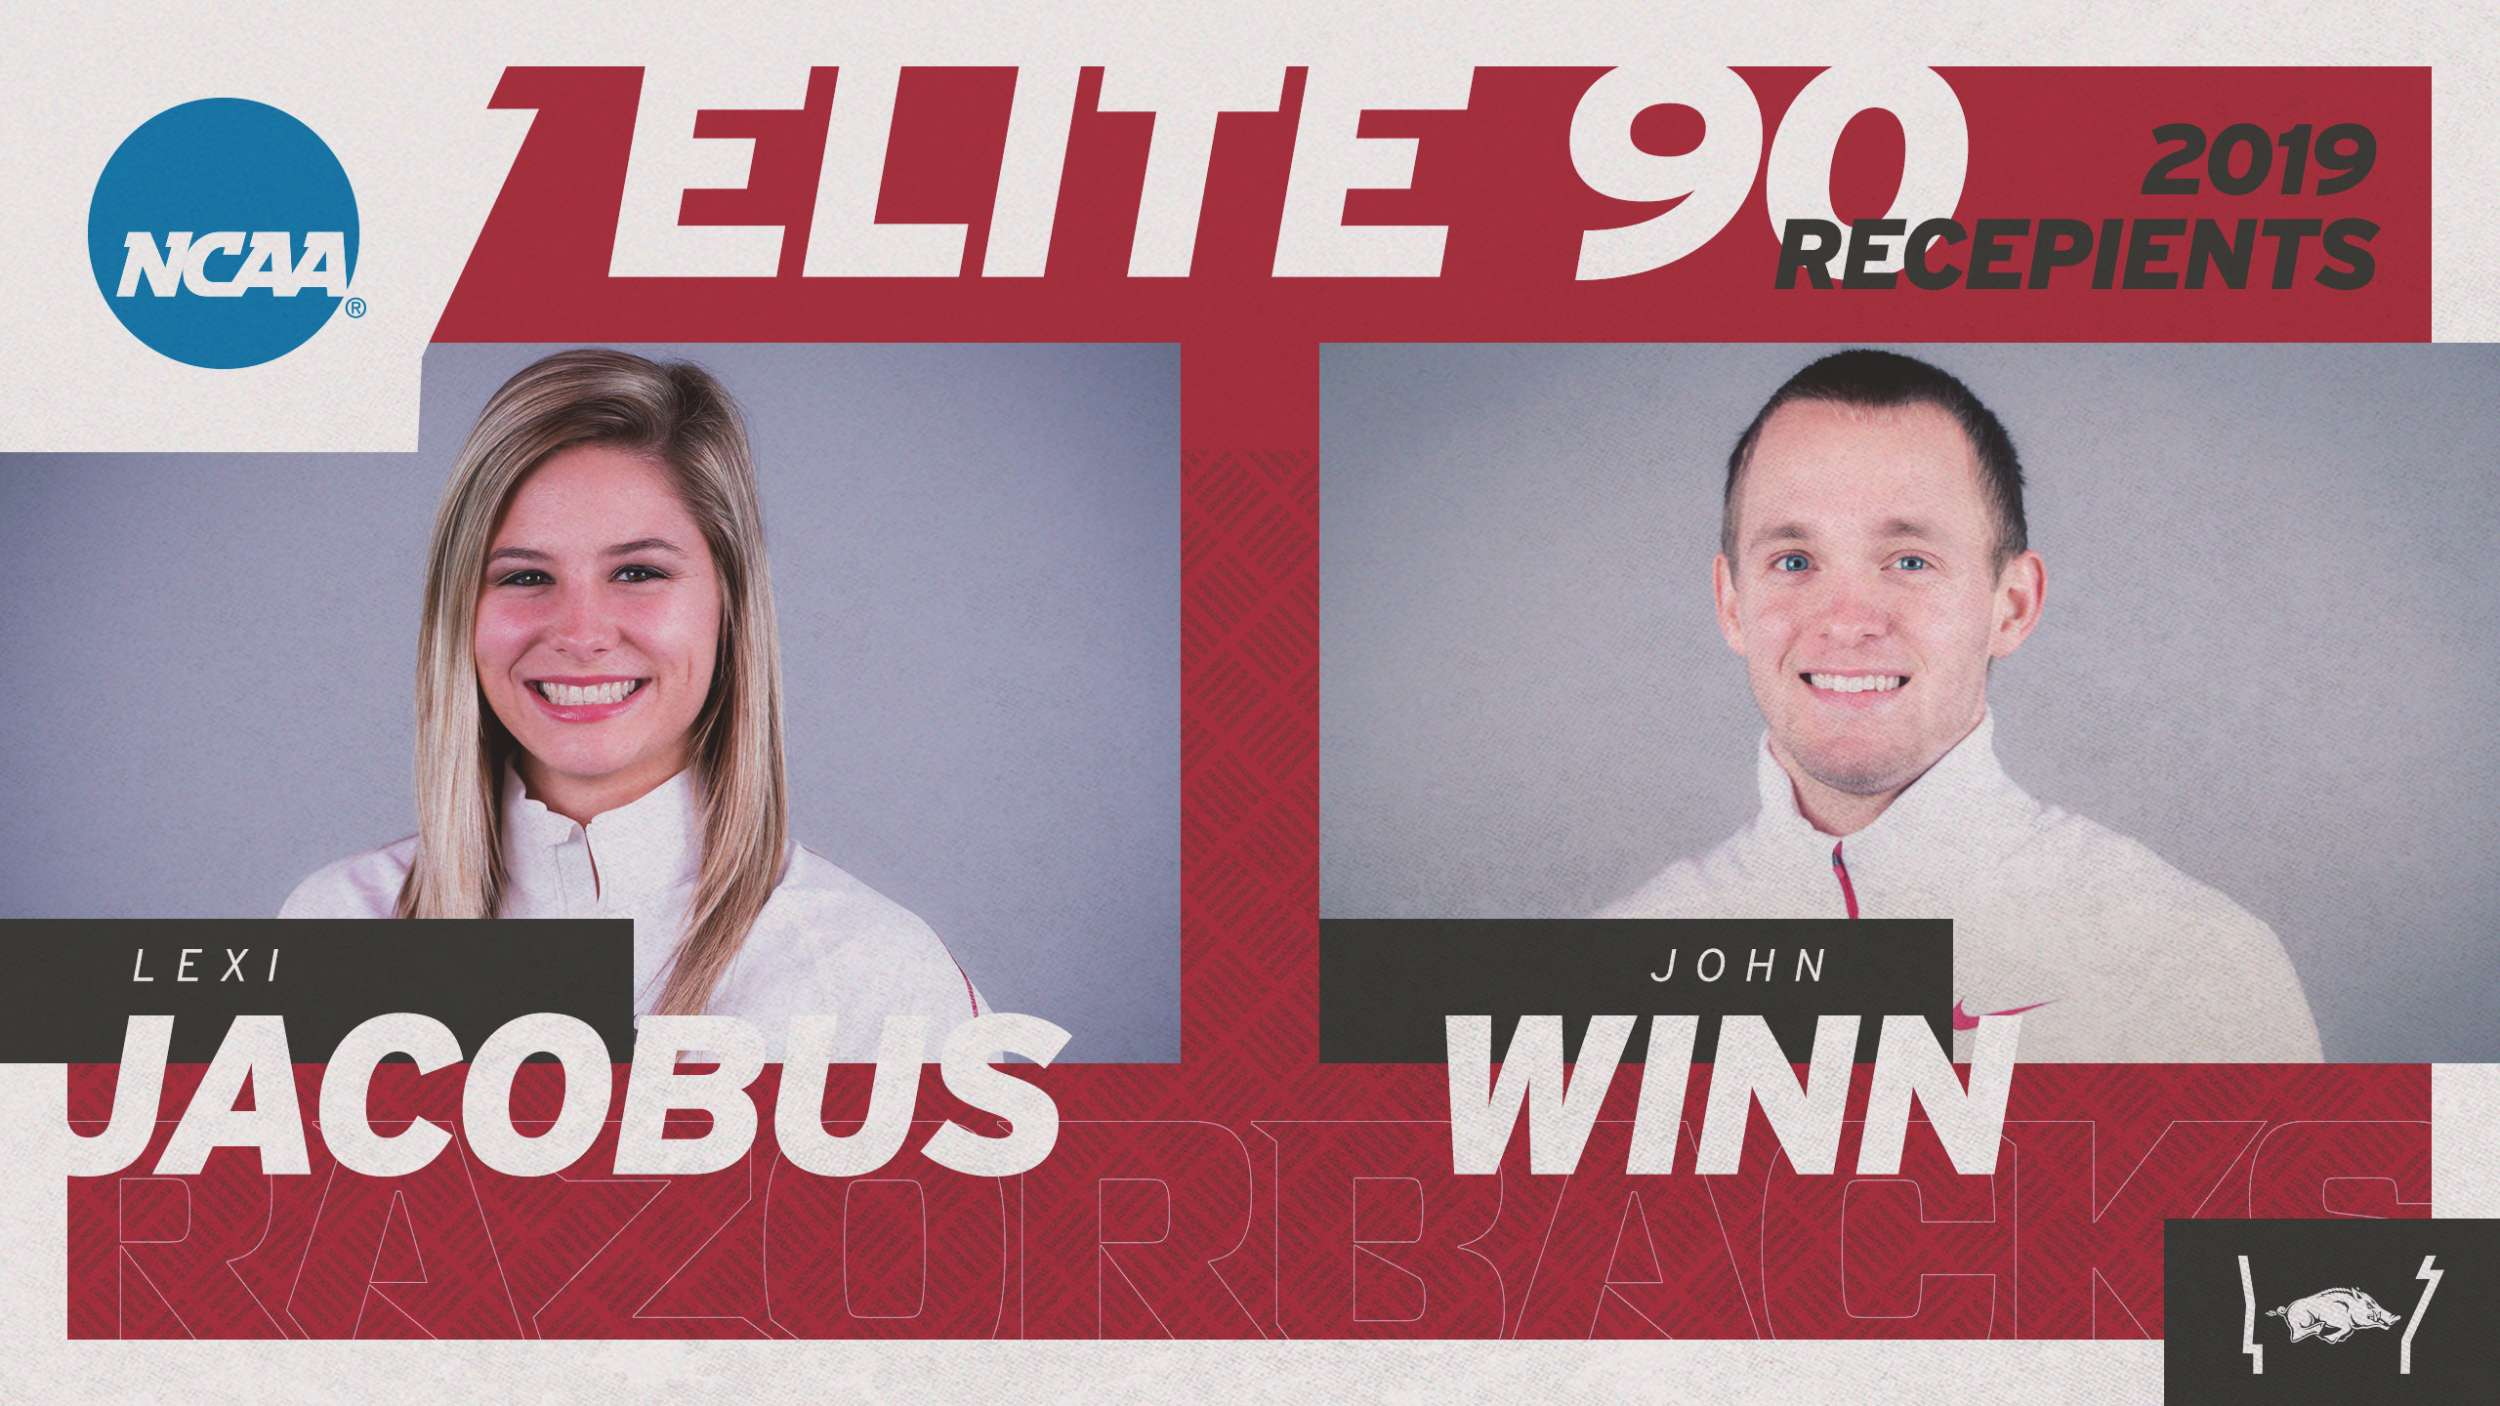 Jacobus, Winn Named Elite 90 Winners